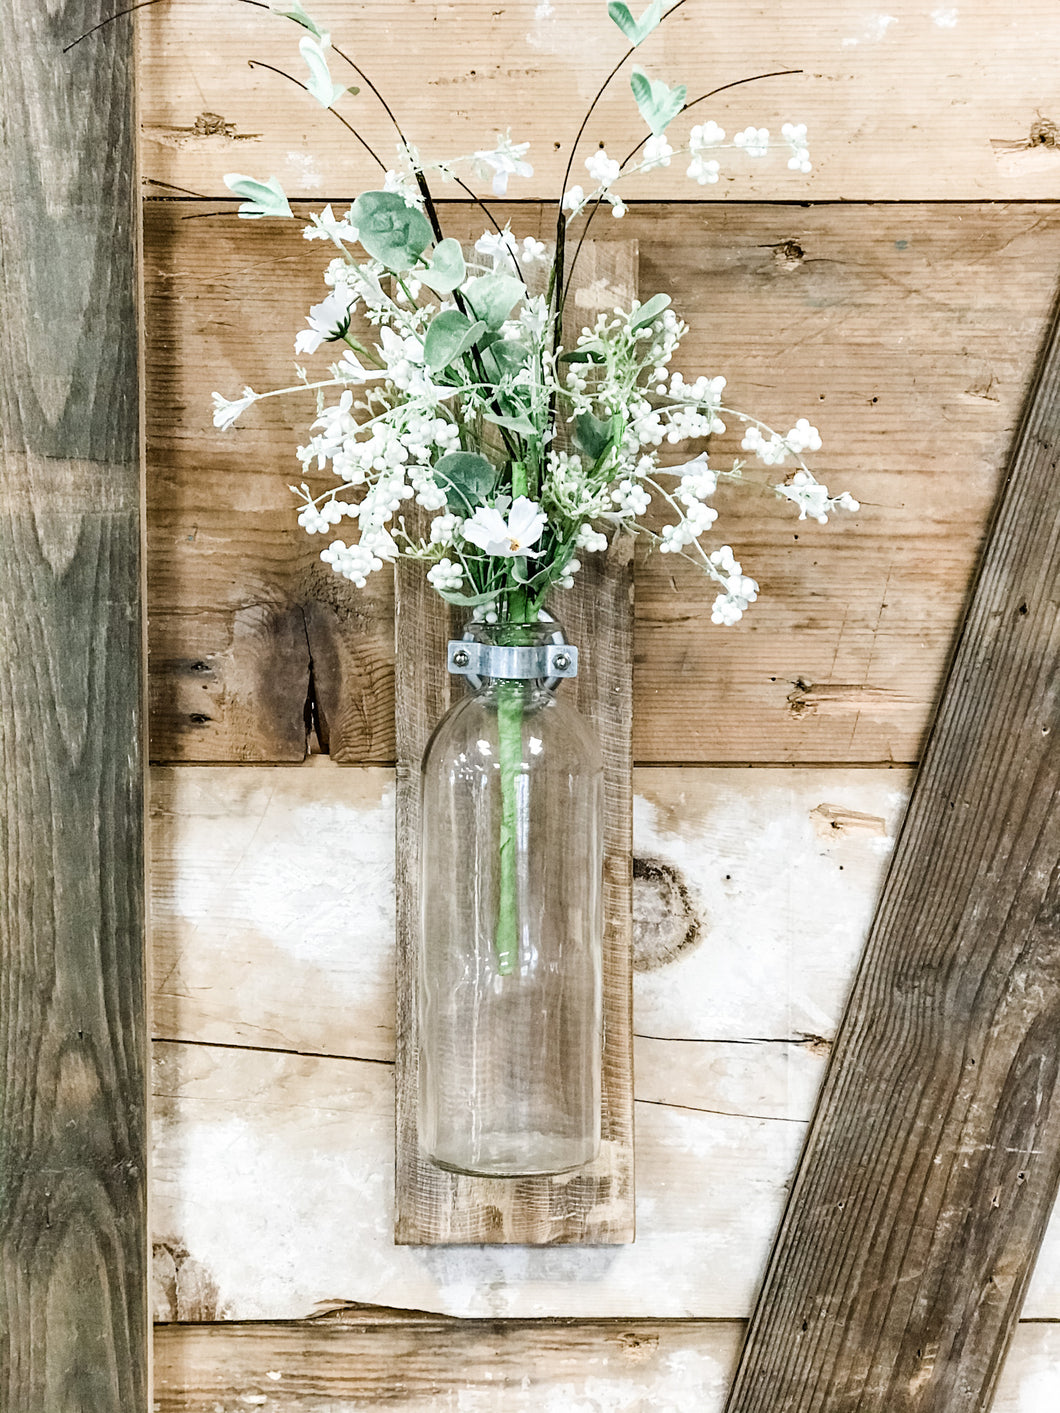 Wood Wall Decor With Glass Vase - The Rustic Barn CT